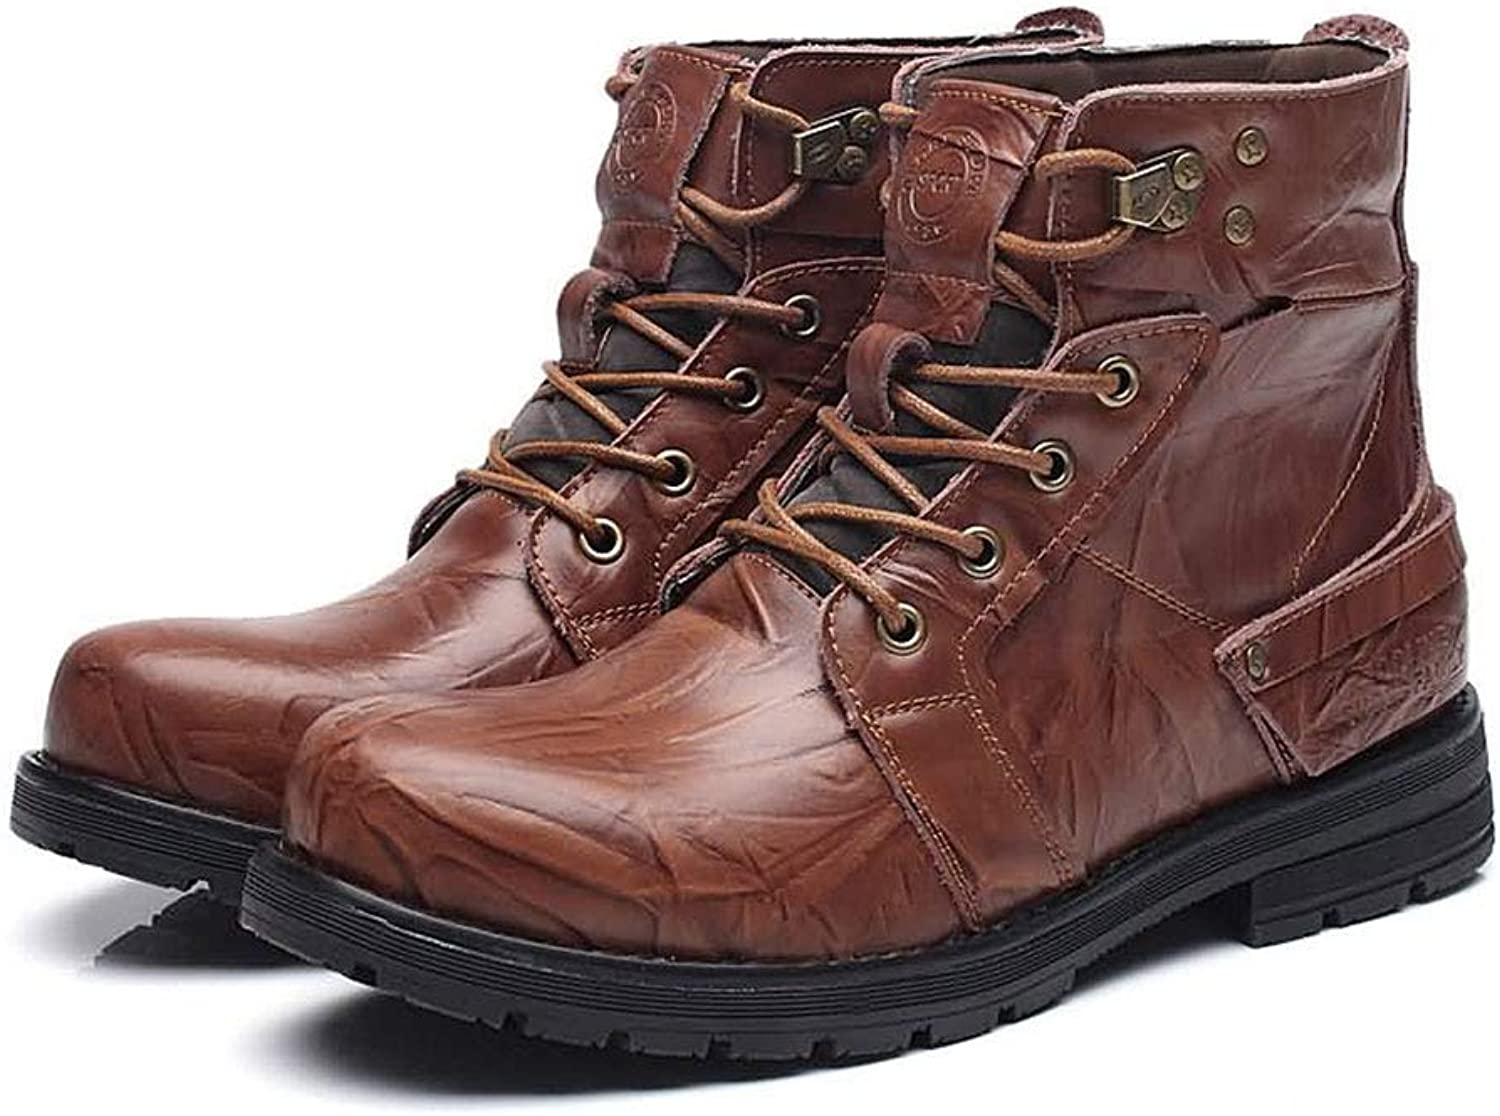 Tlgf Men's Casual Boots,Premium Waterproof Leather Lace Up Walking Hiking Boots,Rubber Sole,Ideal For Everyday Use